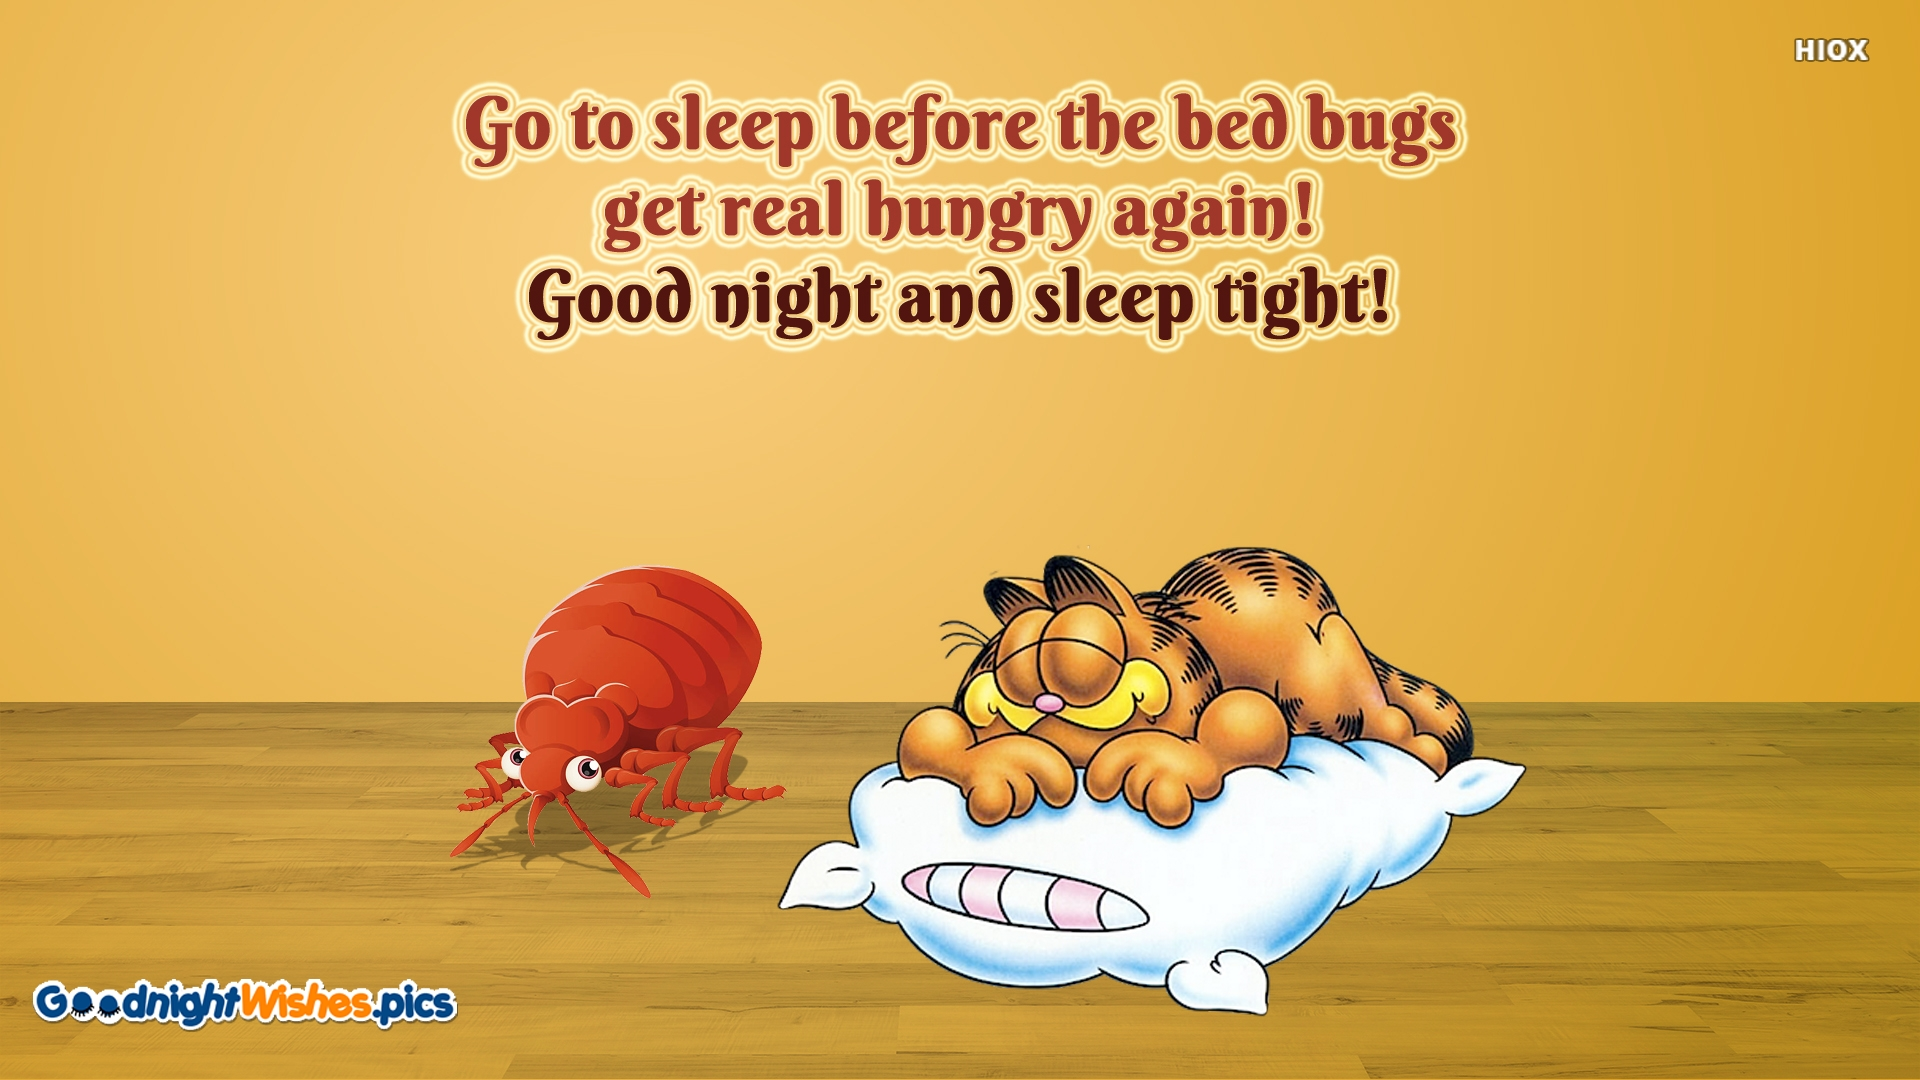 Go To Sleep Before The Bed Bugs Get Real Hungry Again! Good Night and Sleep Tight